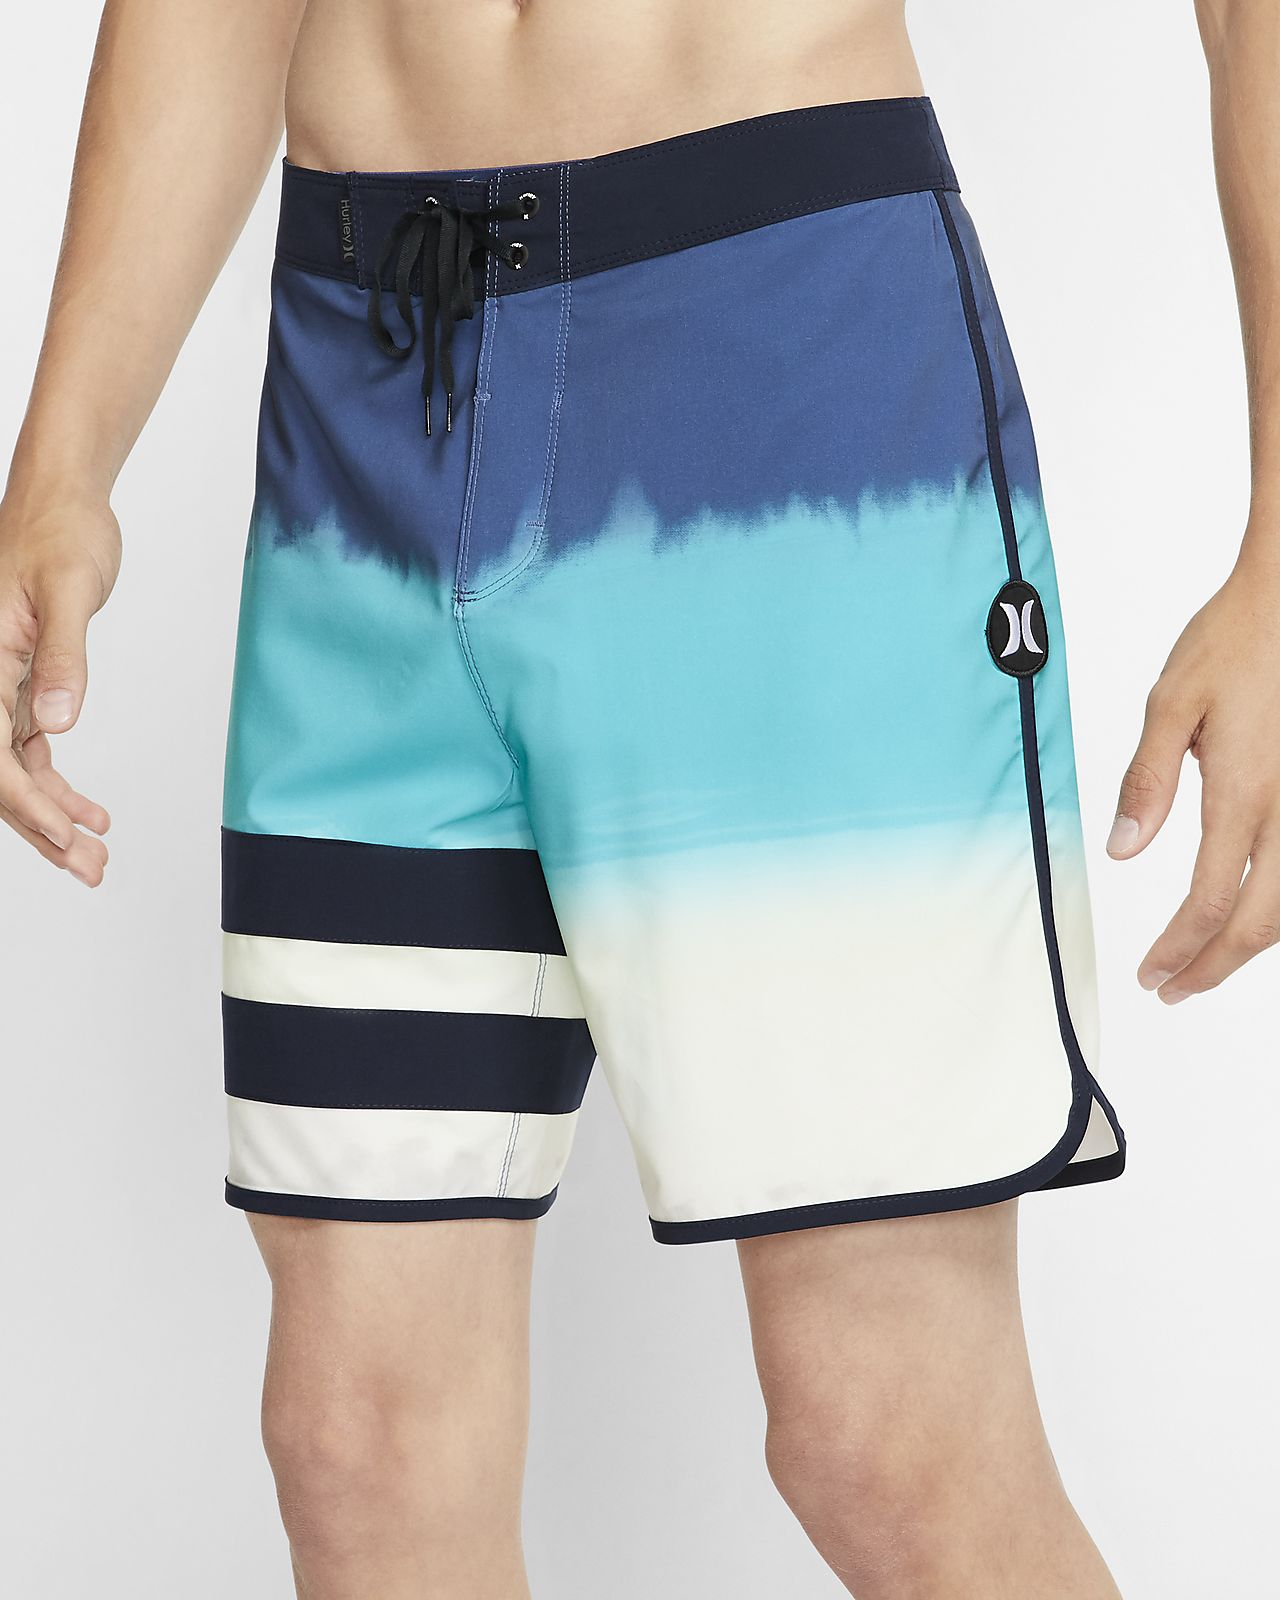 Shorts de playa de 46 cm para hombre Hurley Phantom Block Party Fever